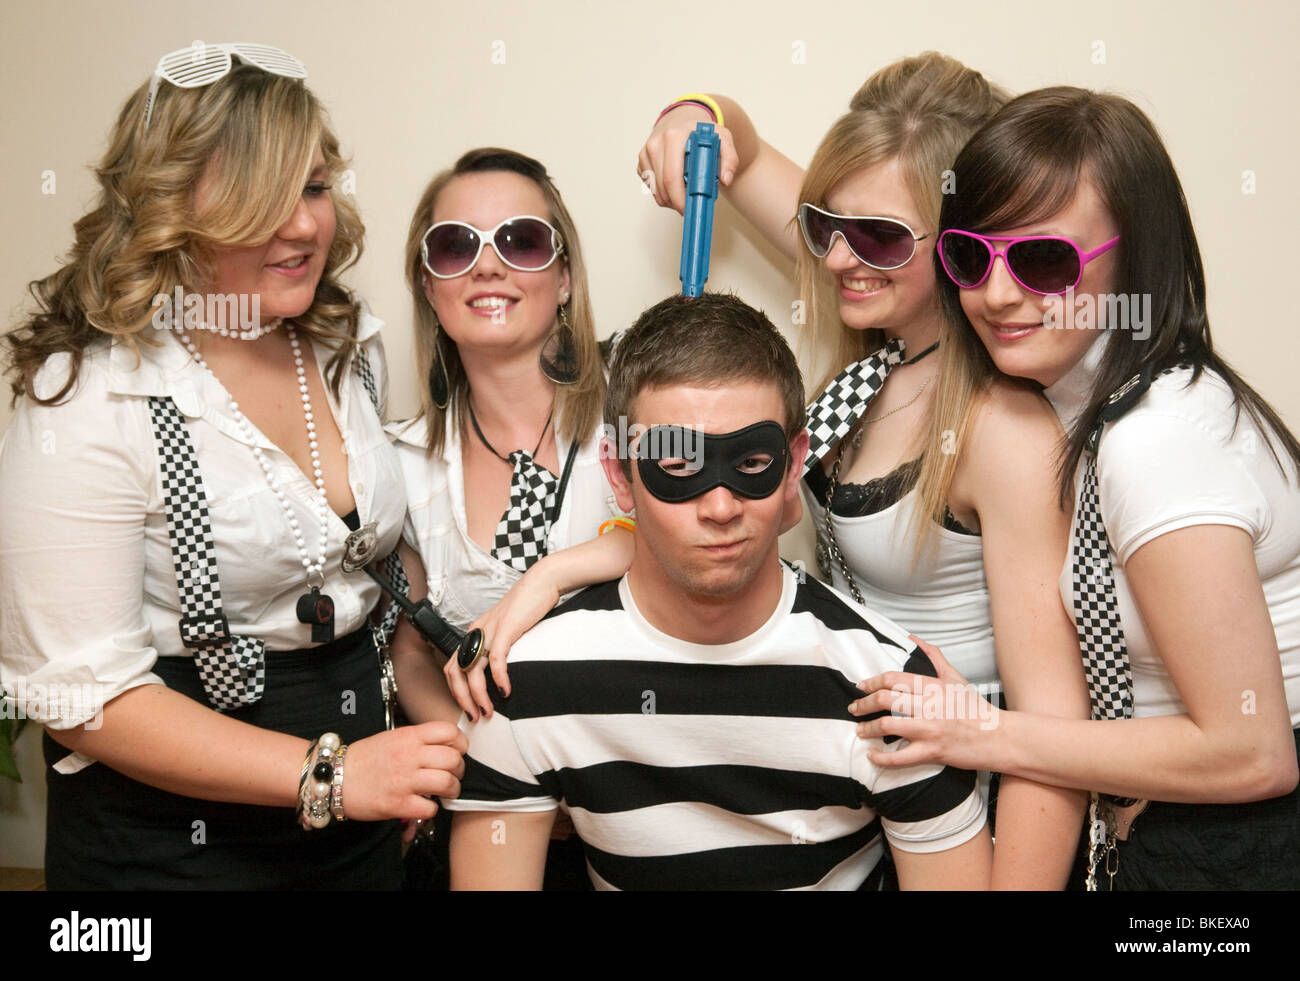 Les adolescents habillés pour aller à un flics et voleurs fancy dress party, UK Photo Stock